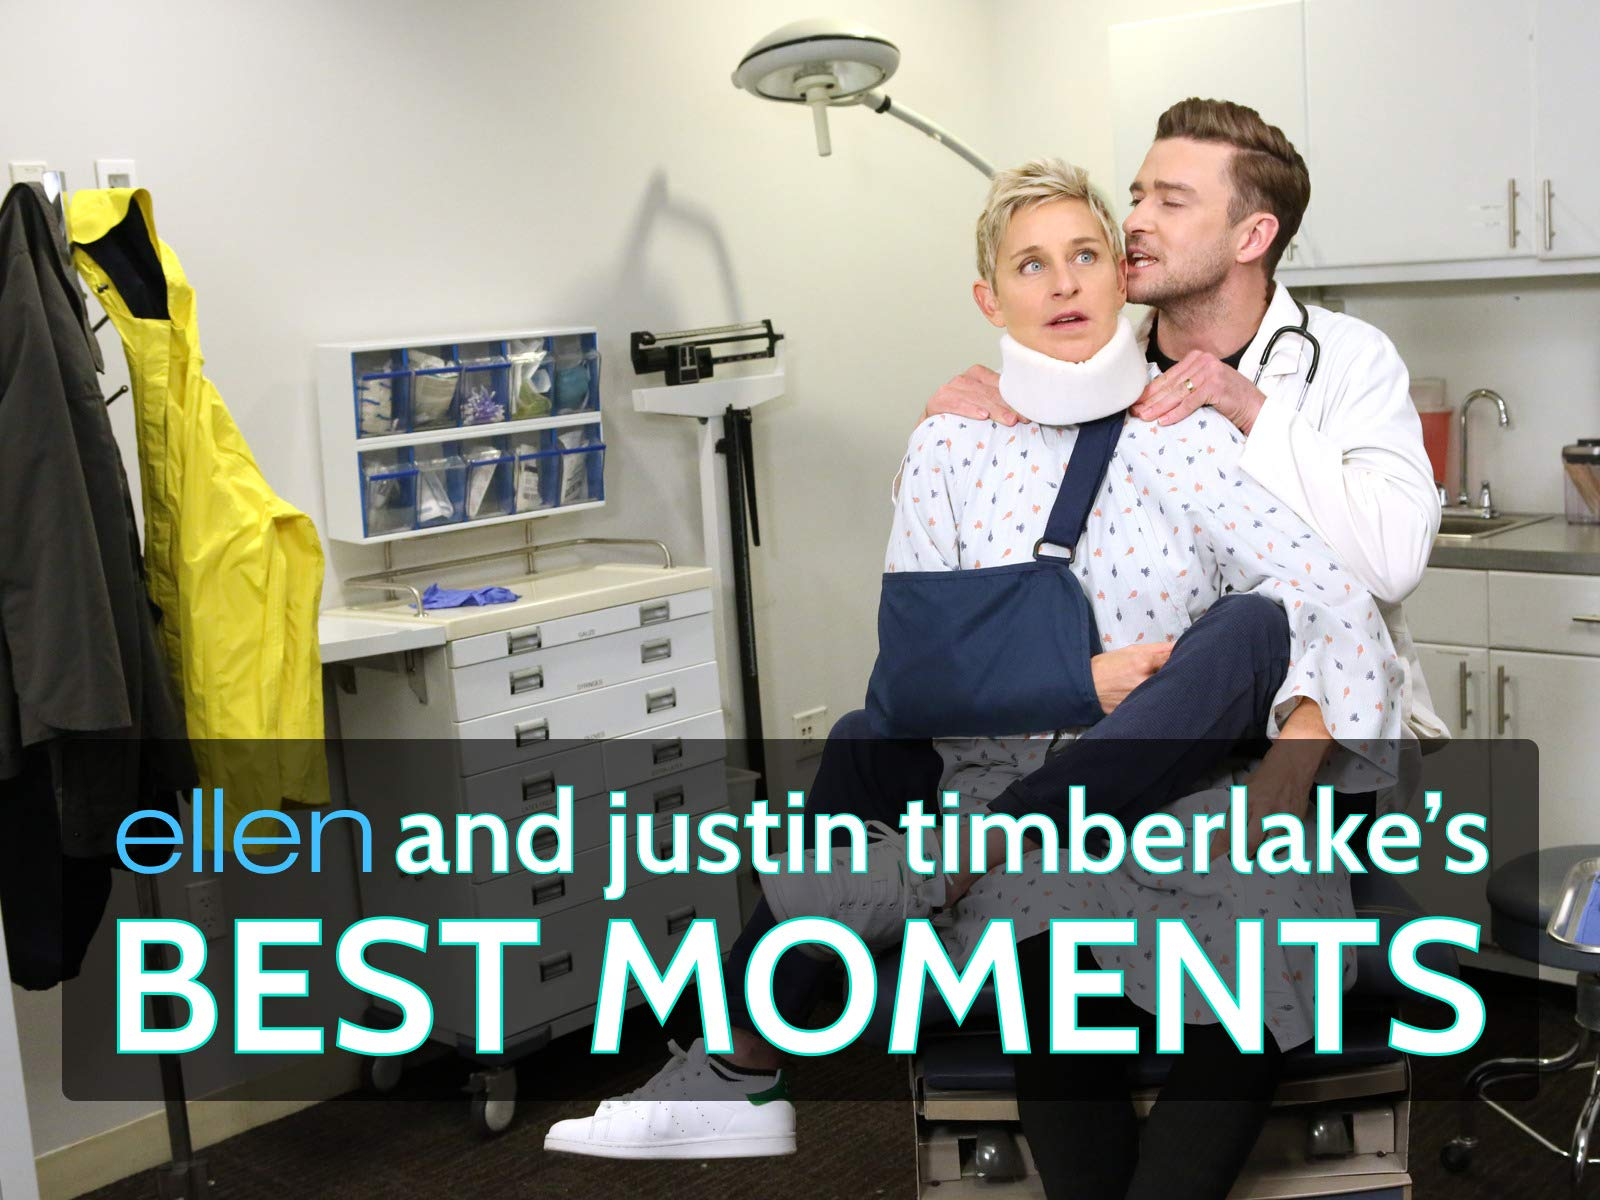 Ellen and Justin Timberlake's Best Moments - Season 1